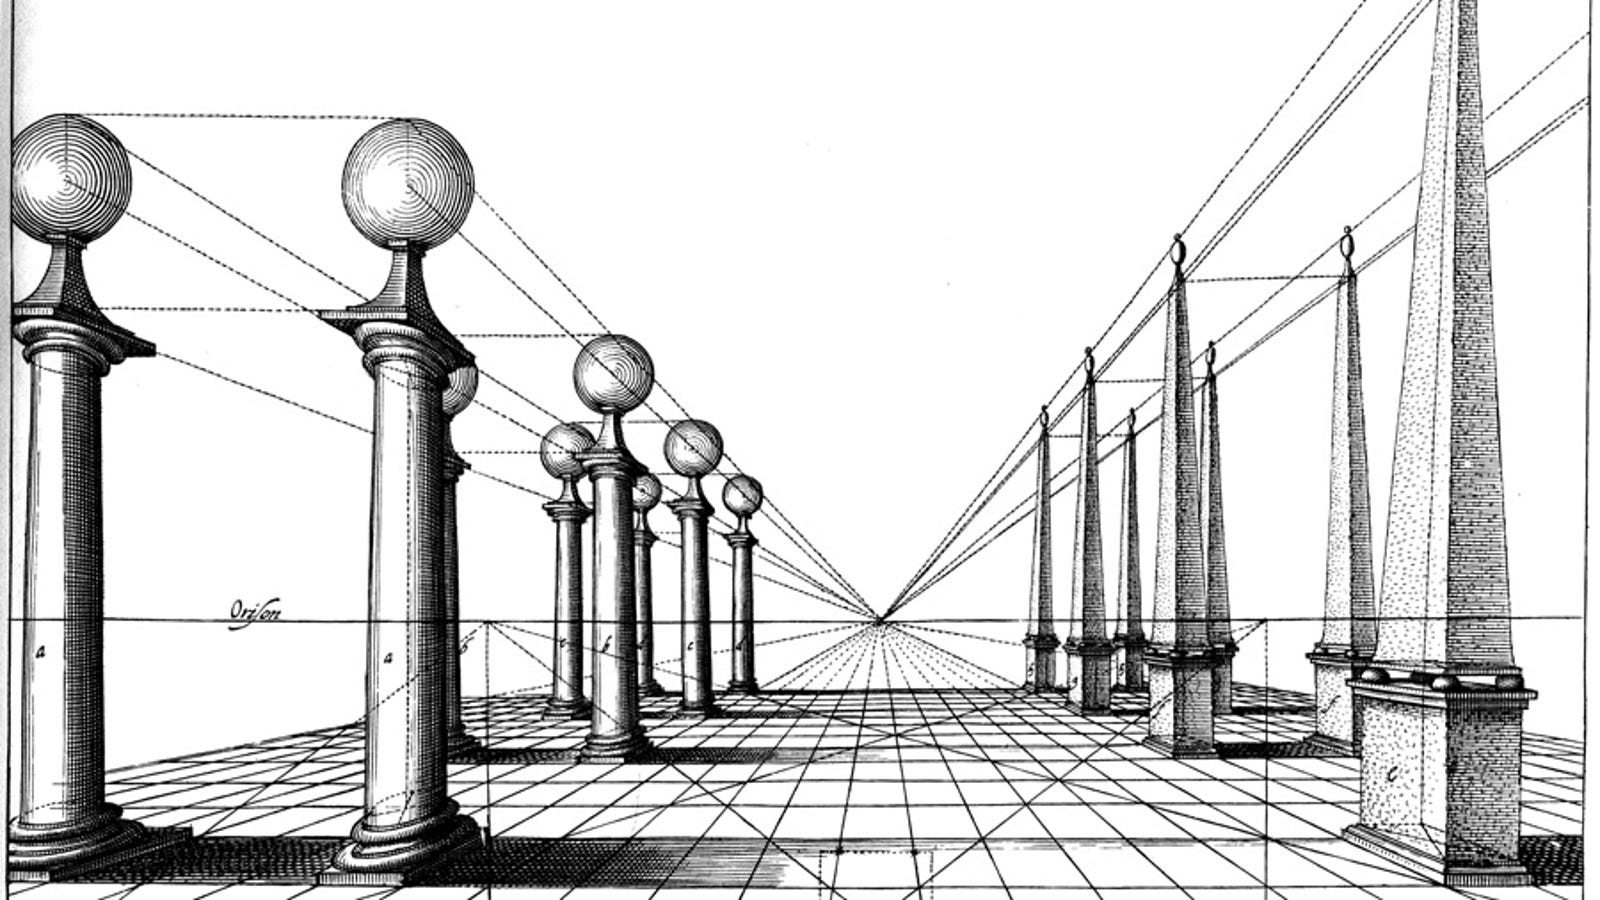 an introduction to the use of perspective in art found in the root of filippo brunelleschi Perspective drawing: altin oran ve filippo brunelleschi  find this pin and more on architecturefilippo brunelleschi by  an introduction to filippo.